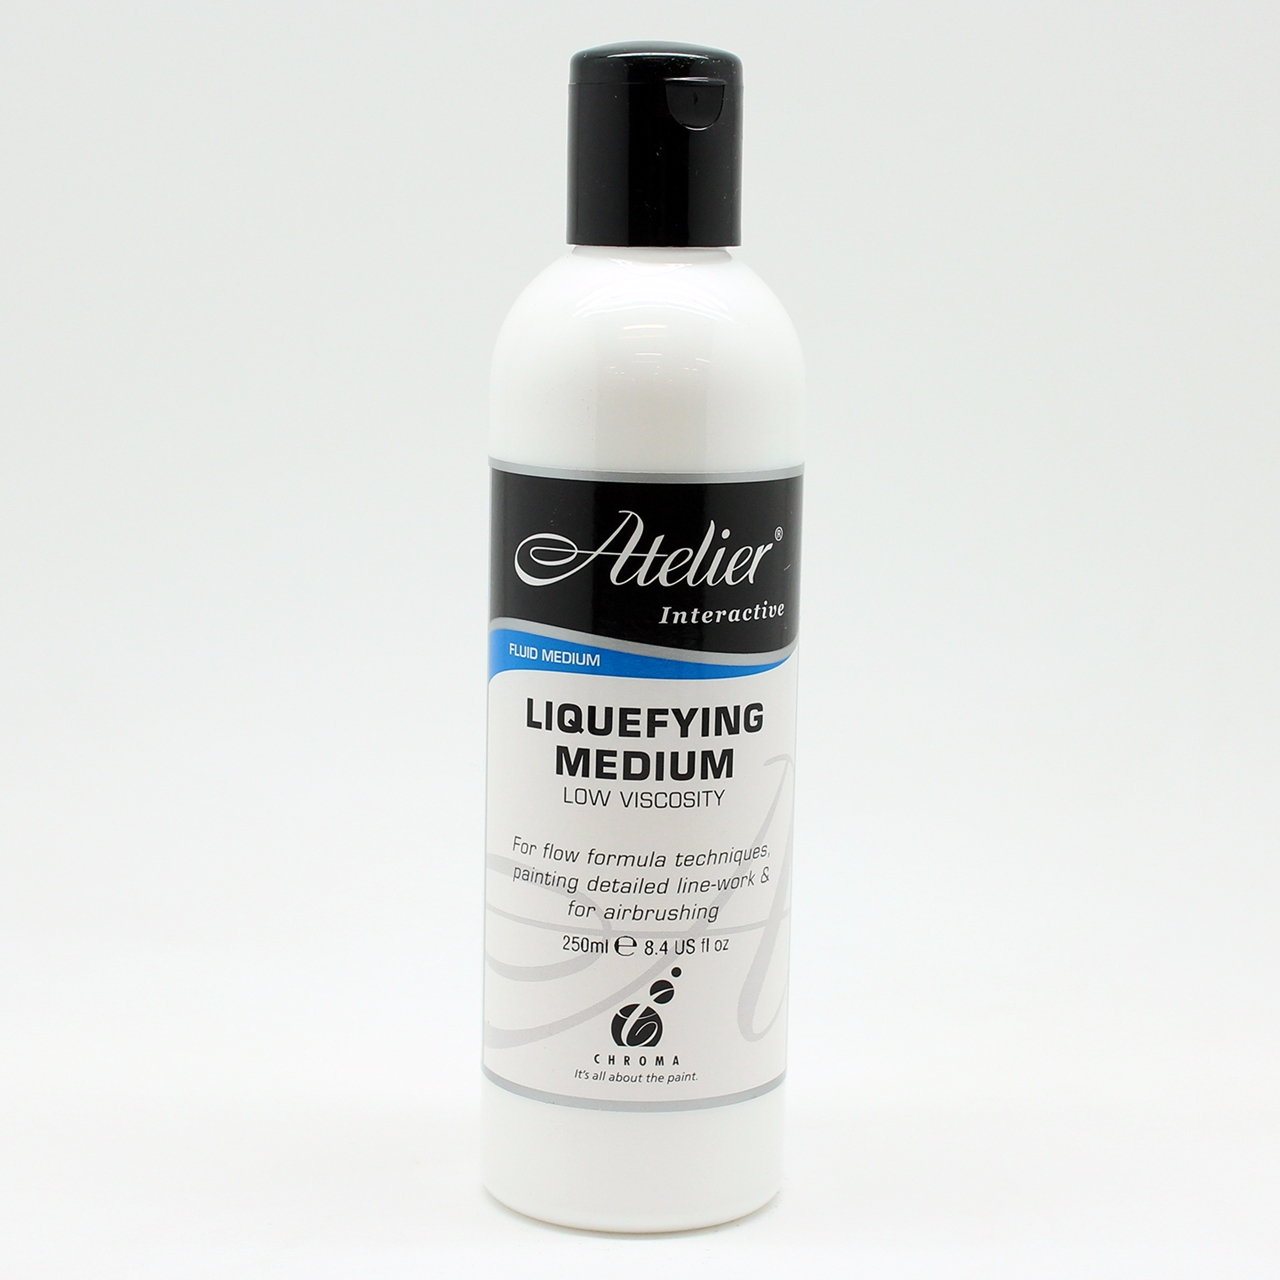 0015425_at-liquefying-medium-250ml